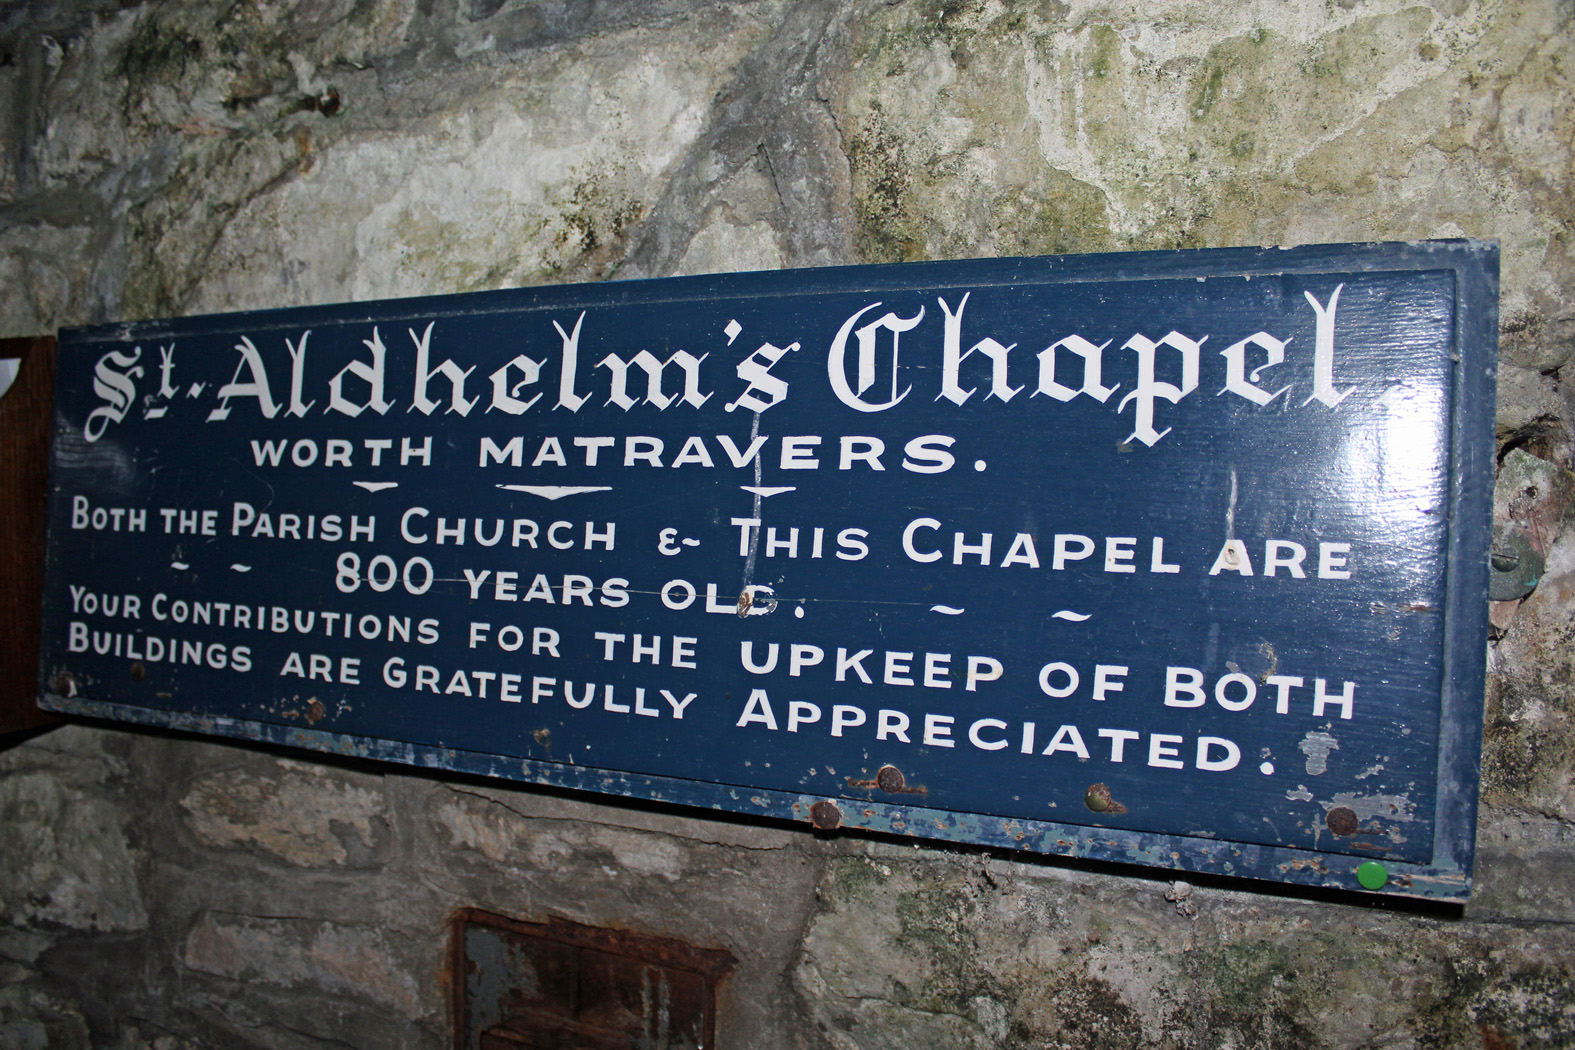 The chapel has a history dating back 800 years...